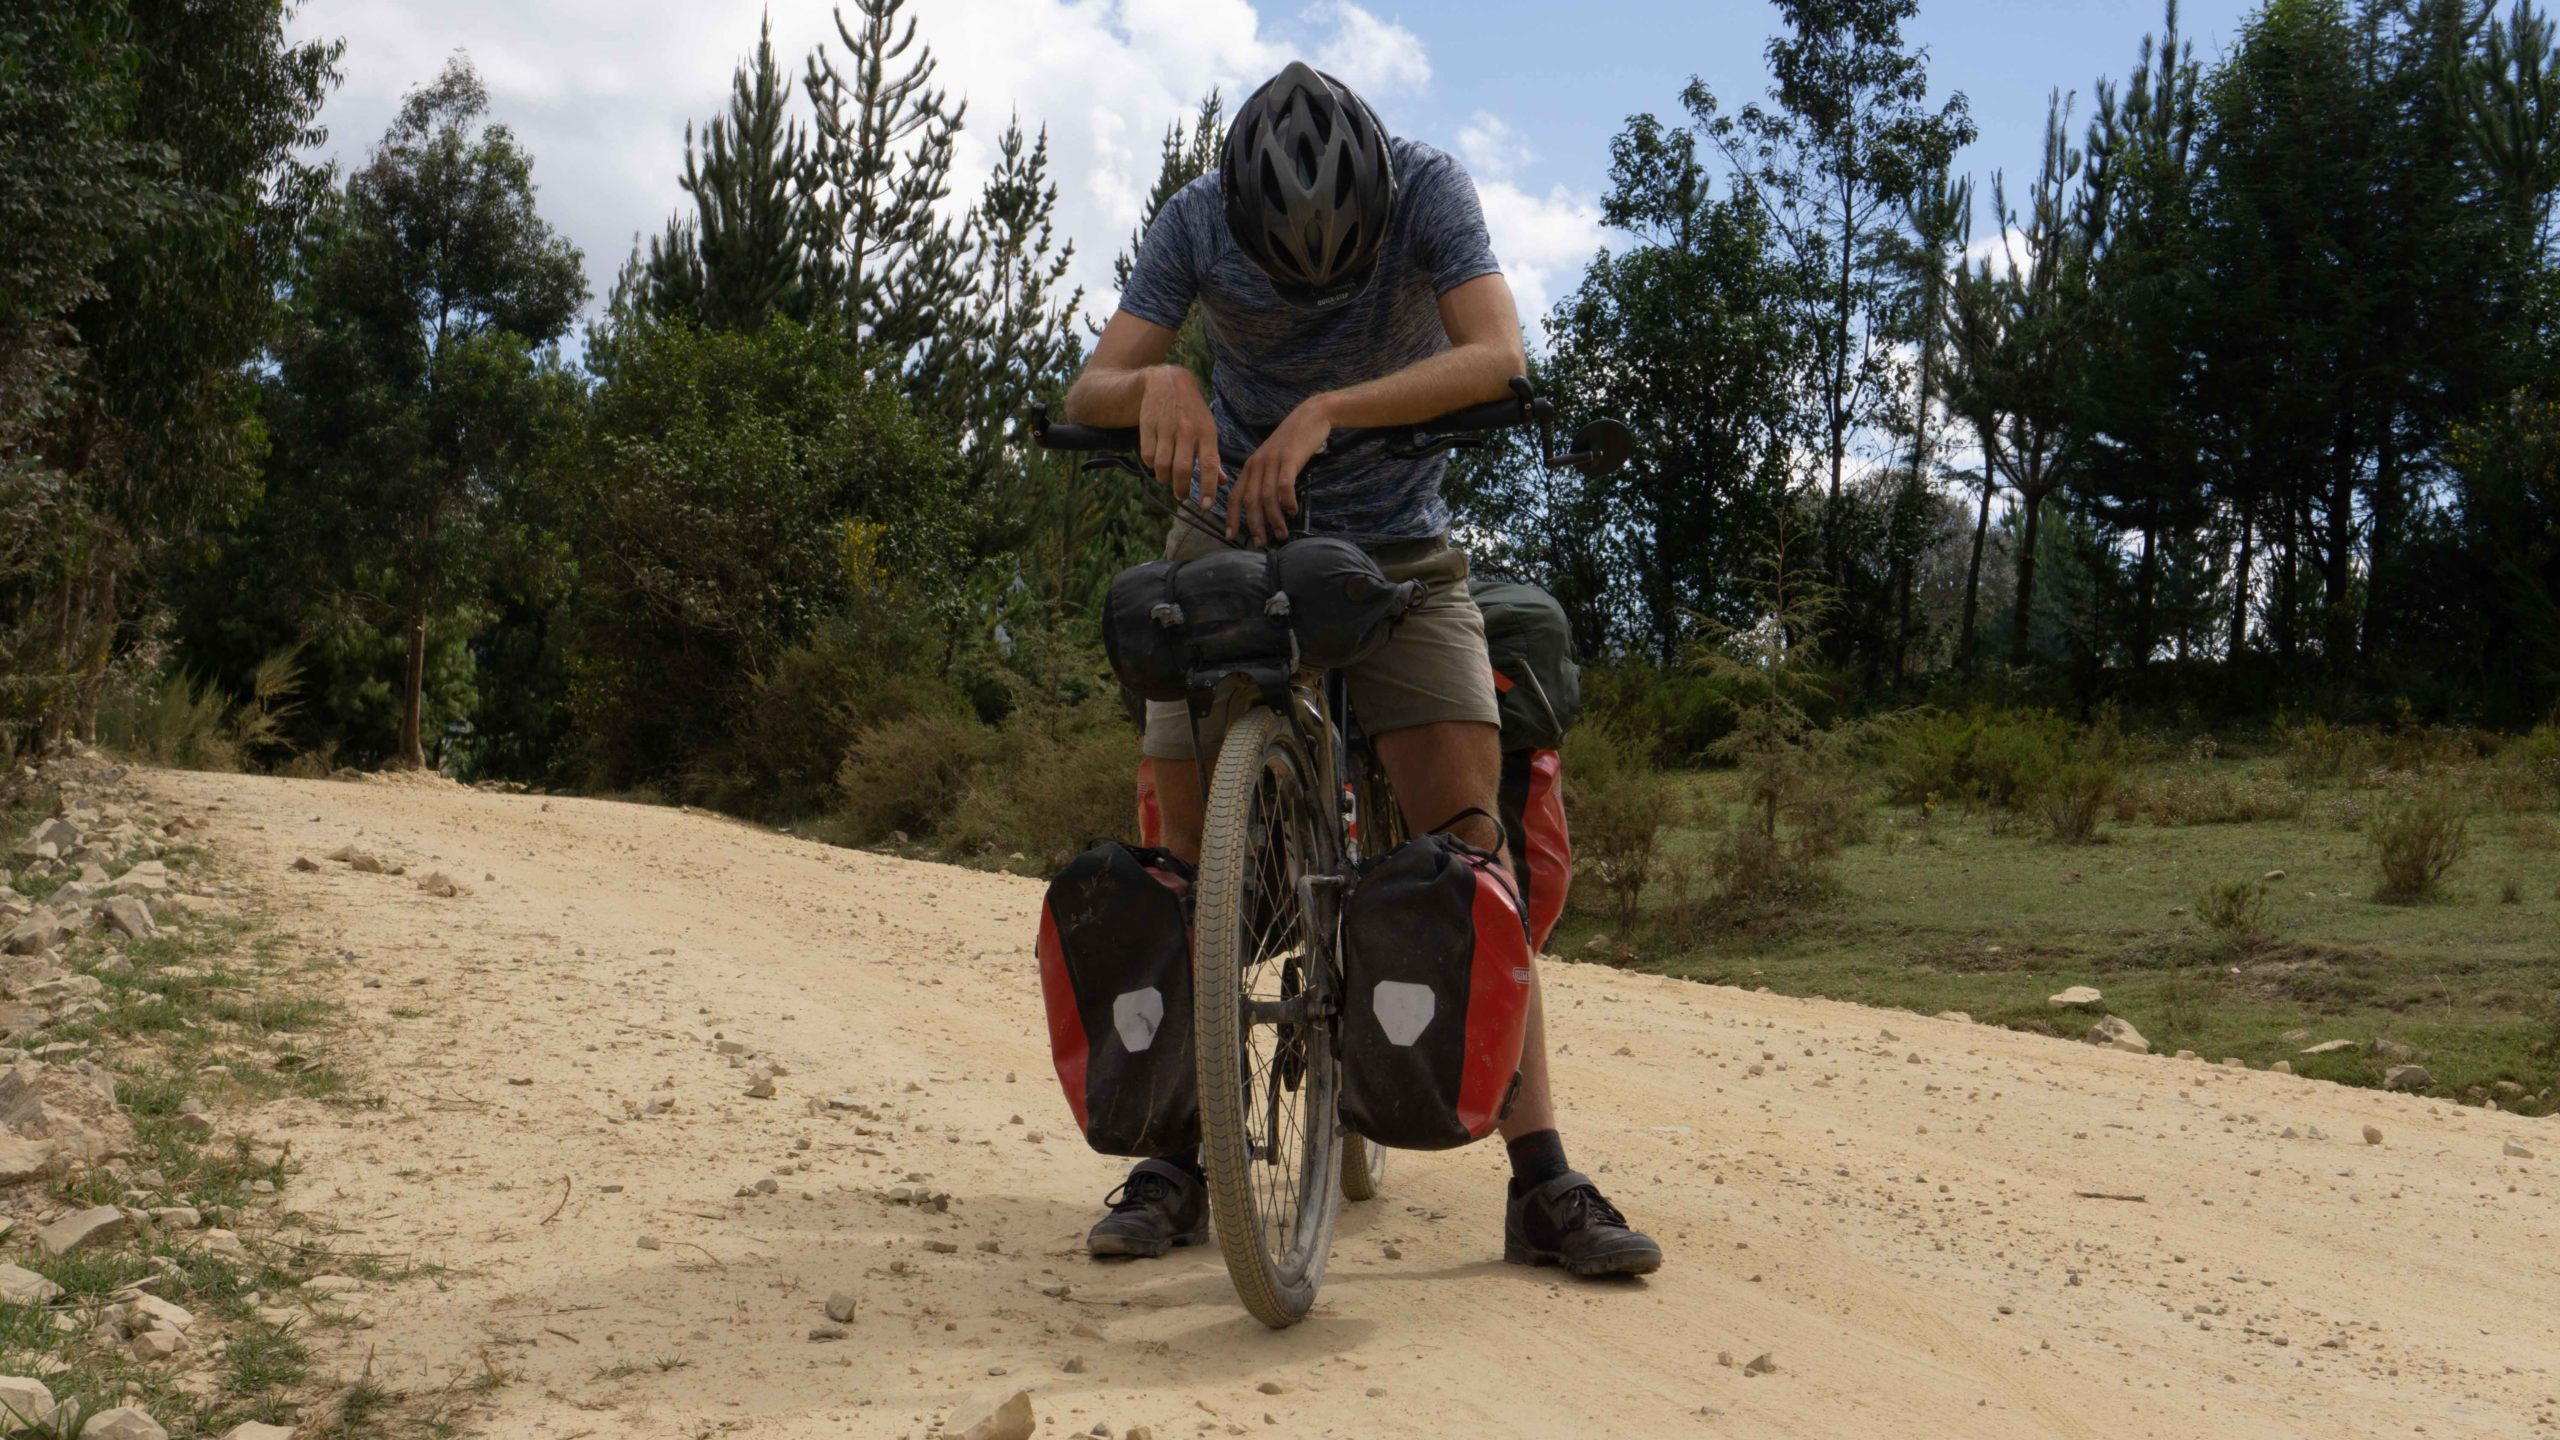 bikepacking or bicycle touring